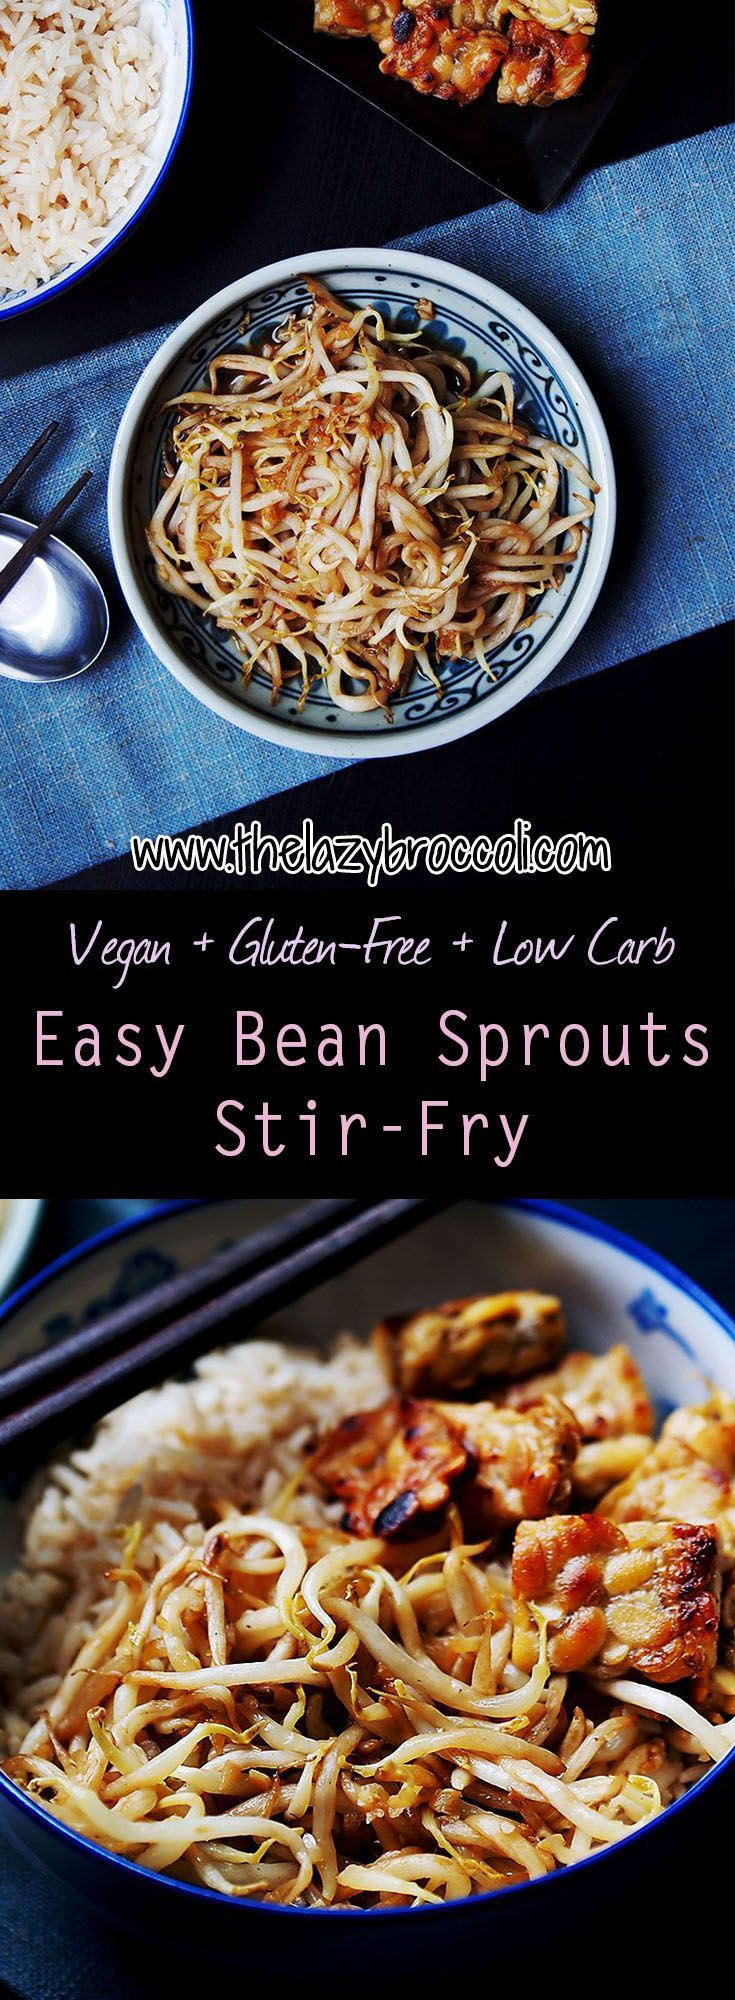 Easy Bean Sprouts Stir Fry